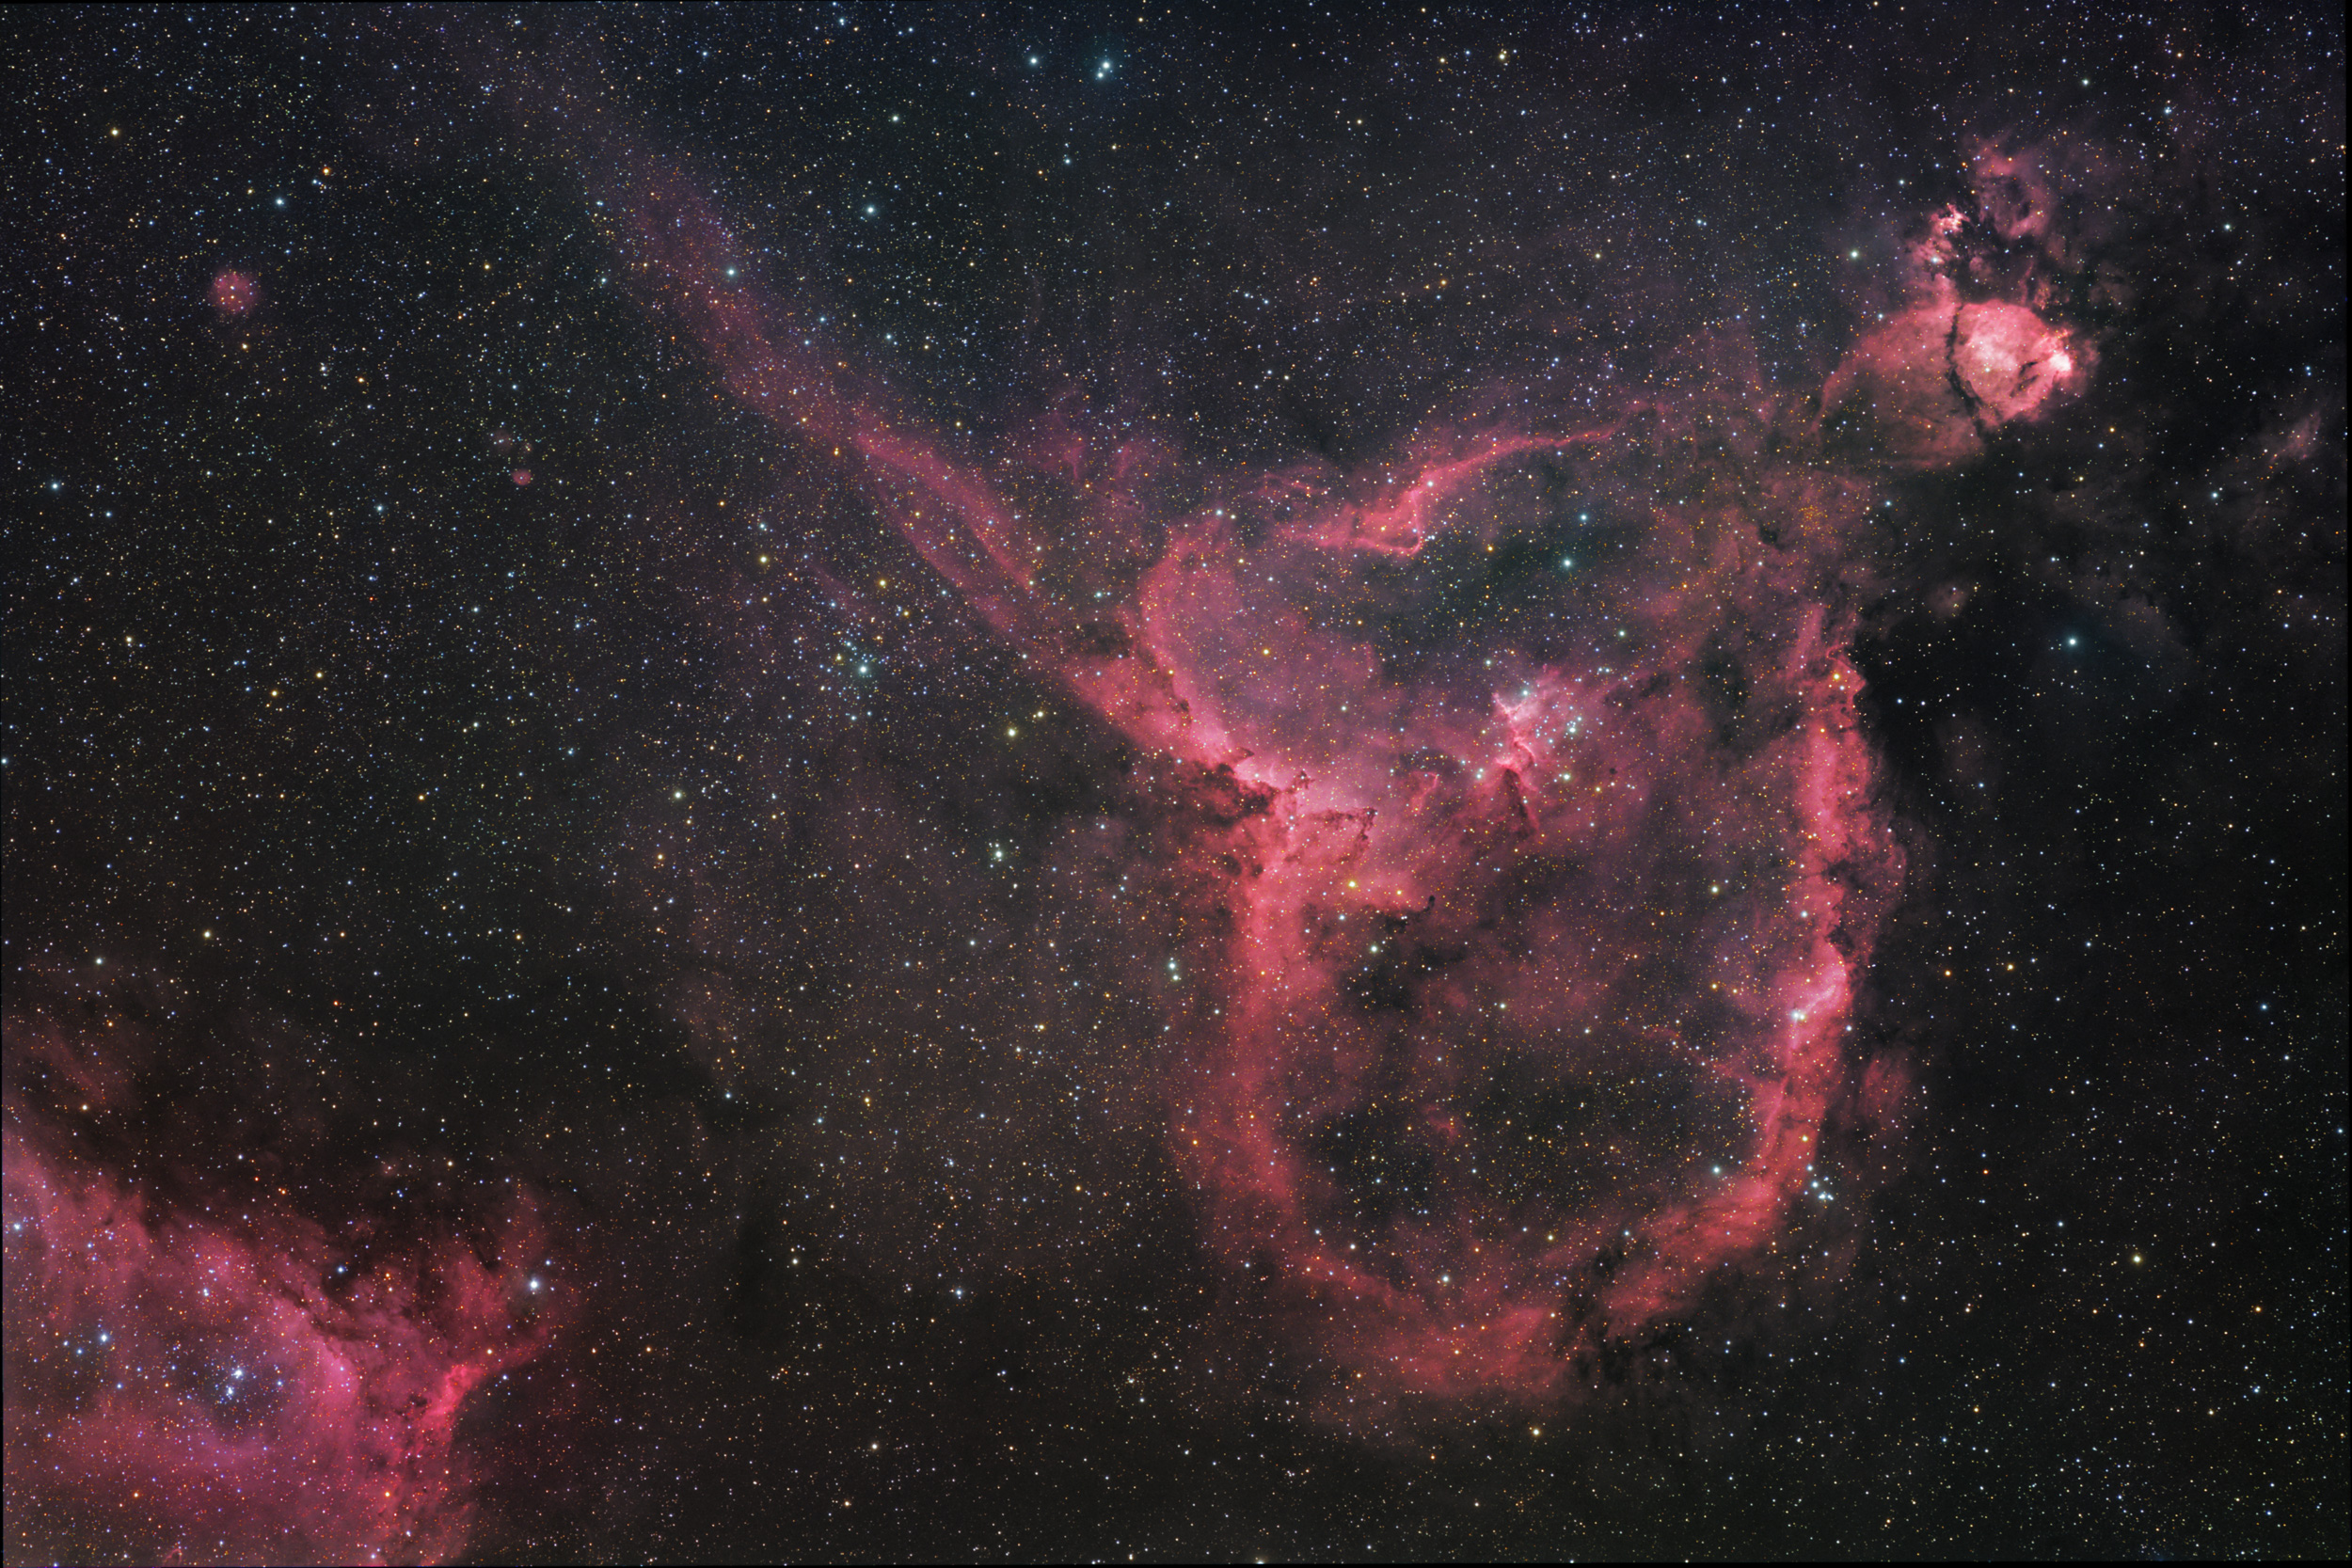 Space in Images - 2013 - 02 - The Heart nebula